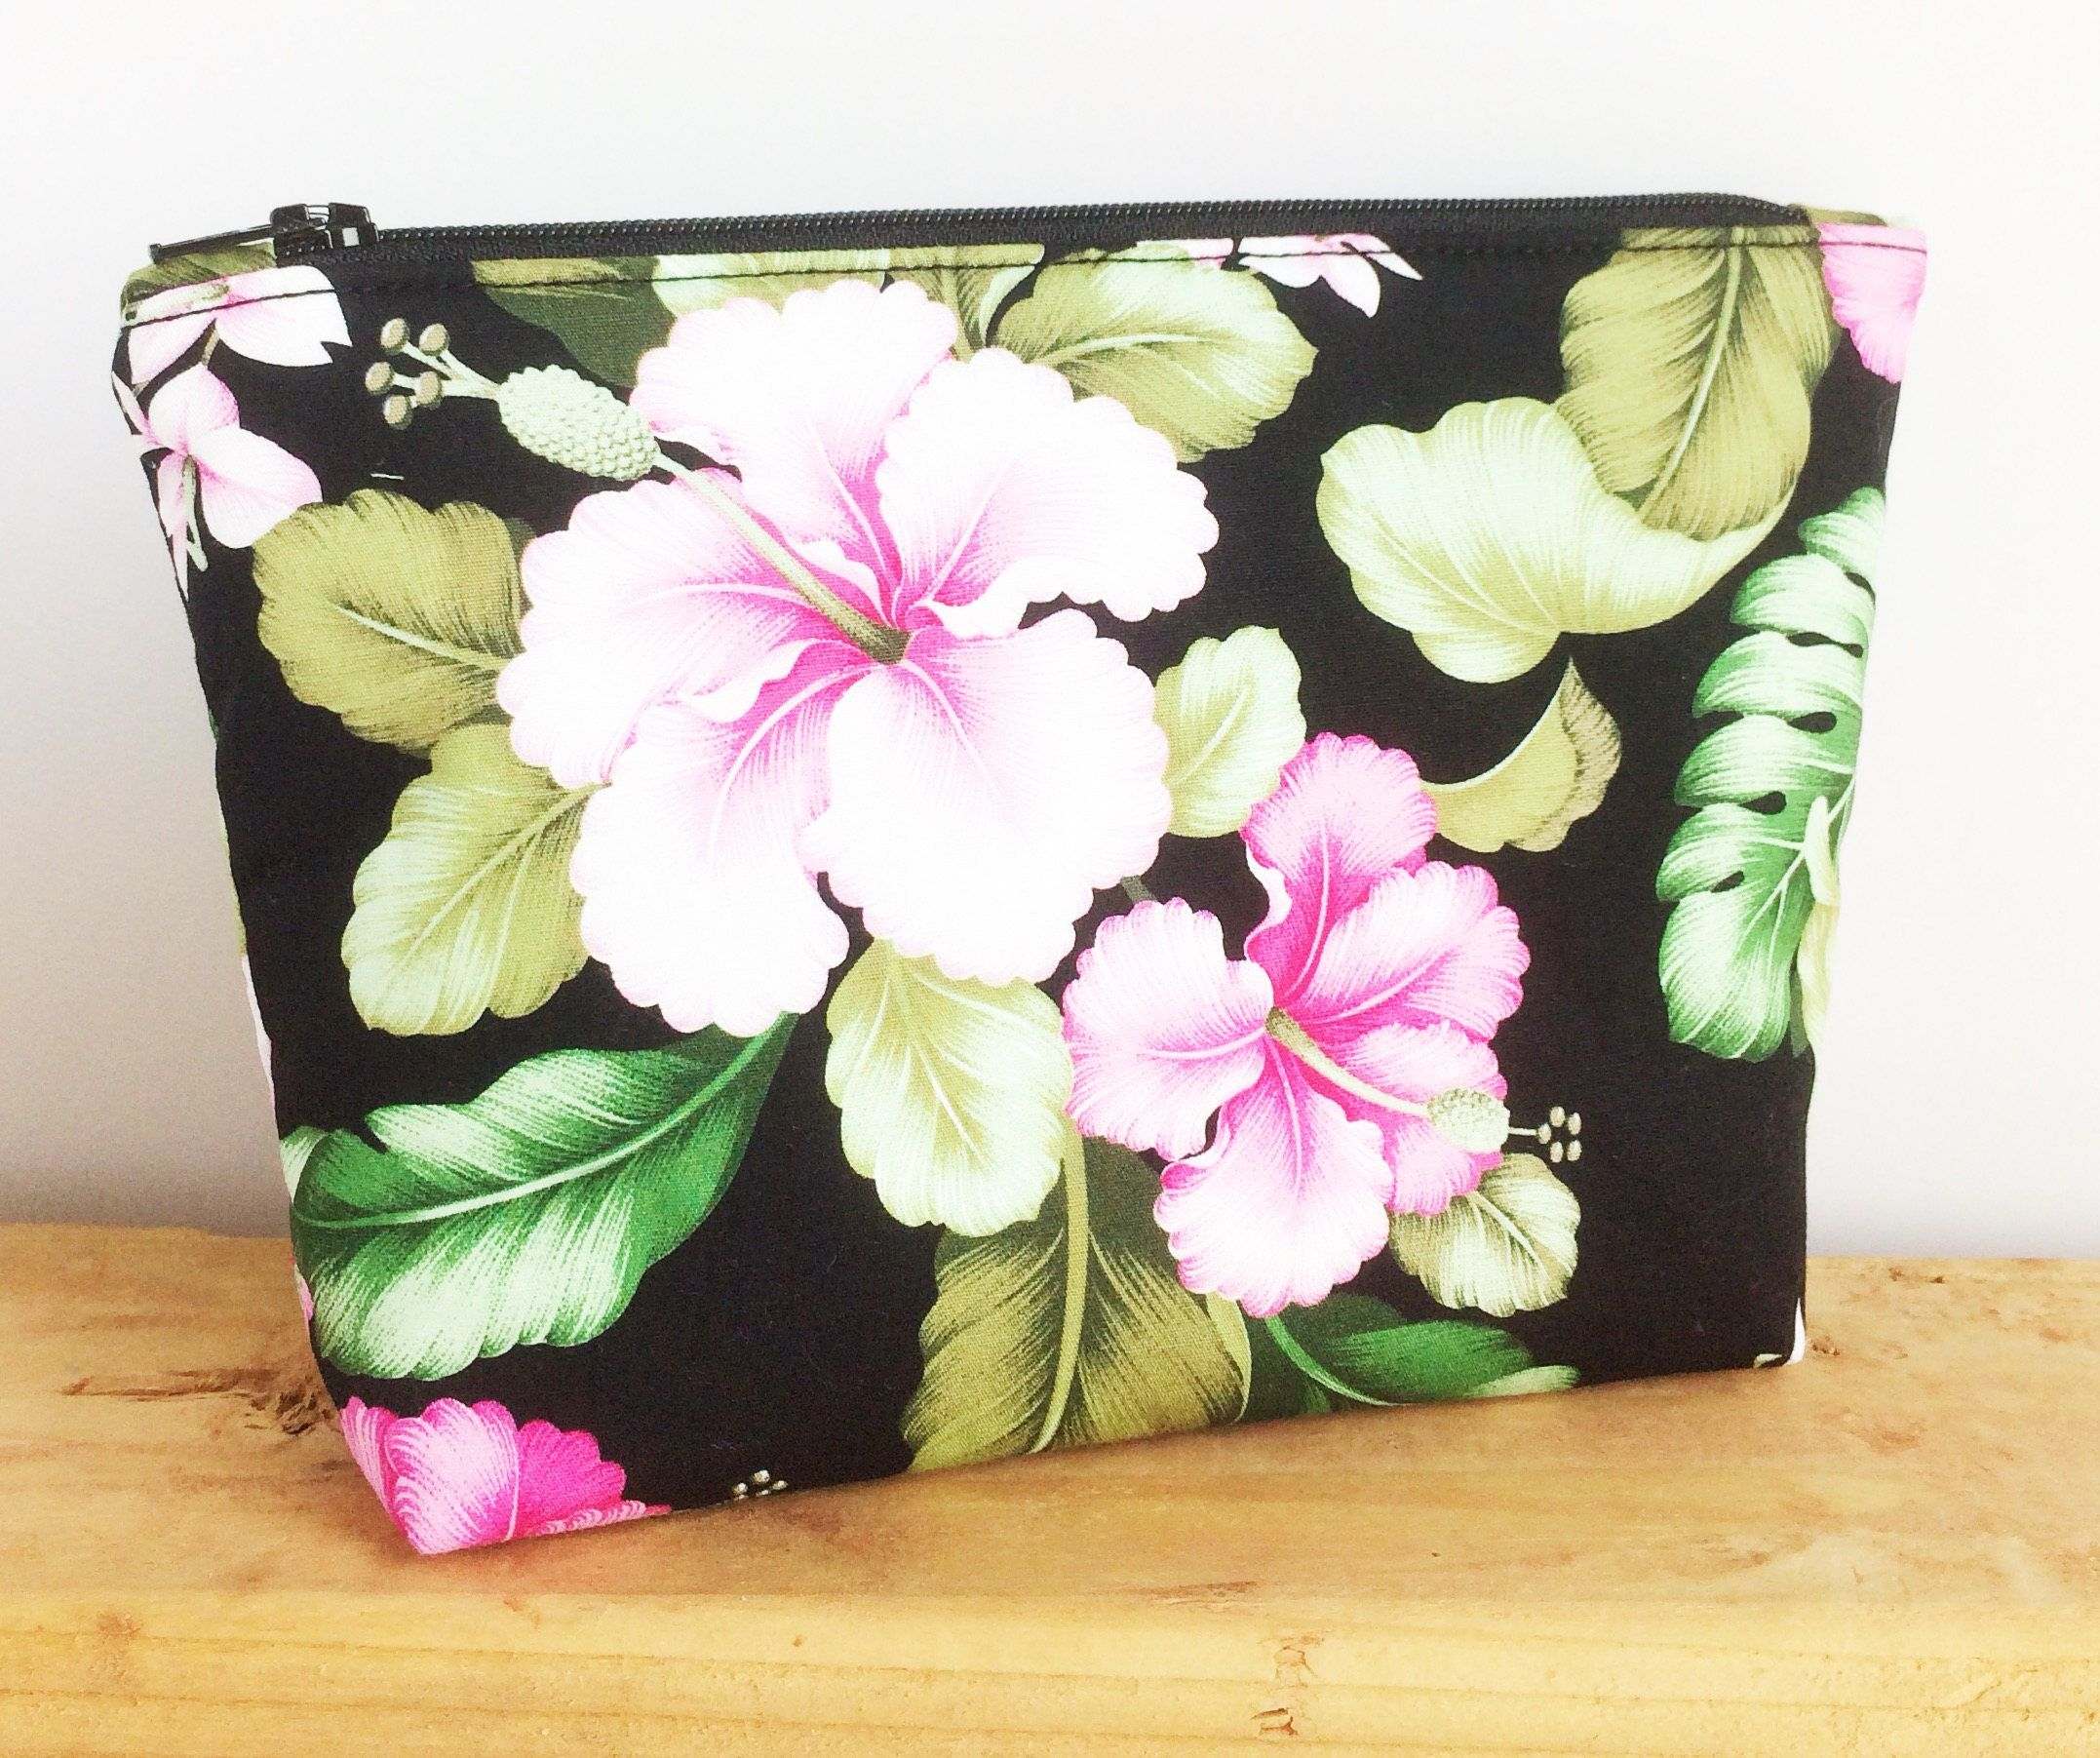 8c2140dd5 Tropical Makeup Bag - Travel Pouch - Hawaiian Bag - Cute Makeup Bag -  Honeymoon Gift - Best Friend Gift - Small Cosmetic Bag - Black Pouch